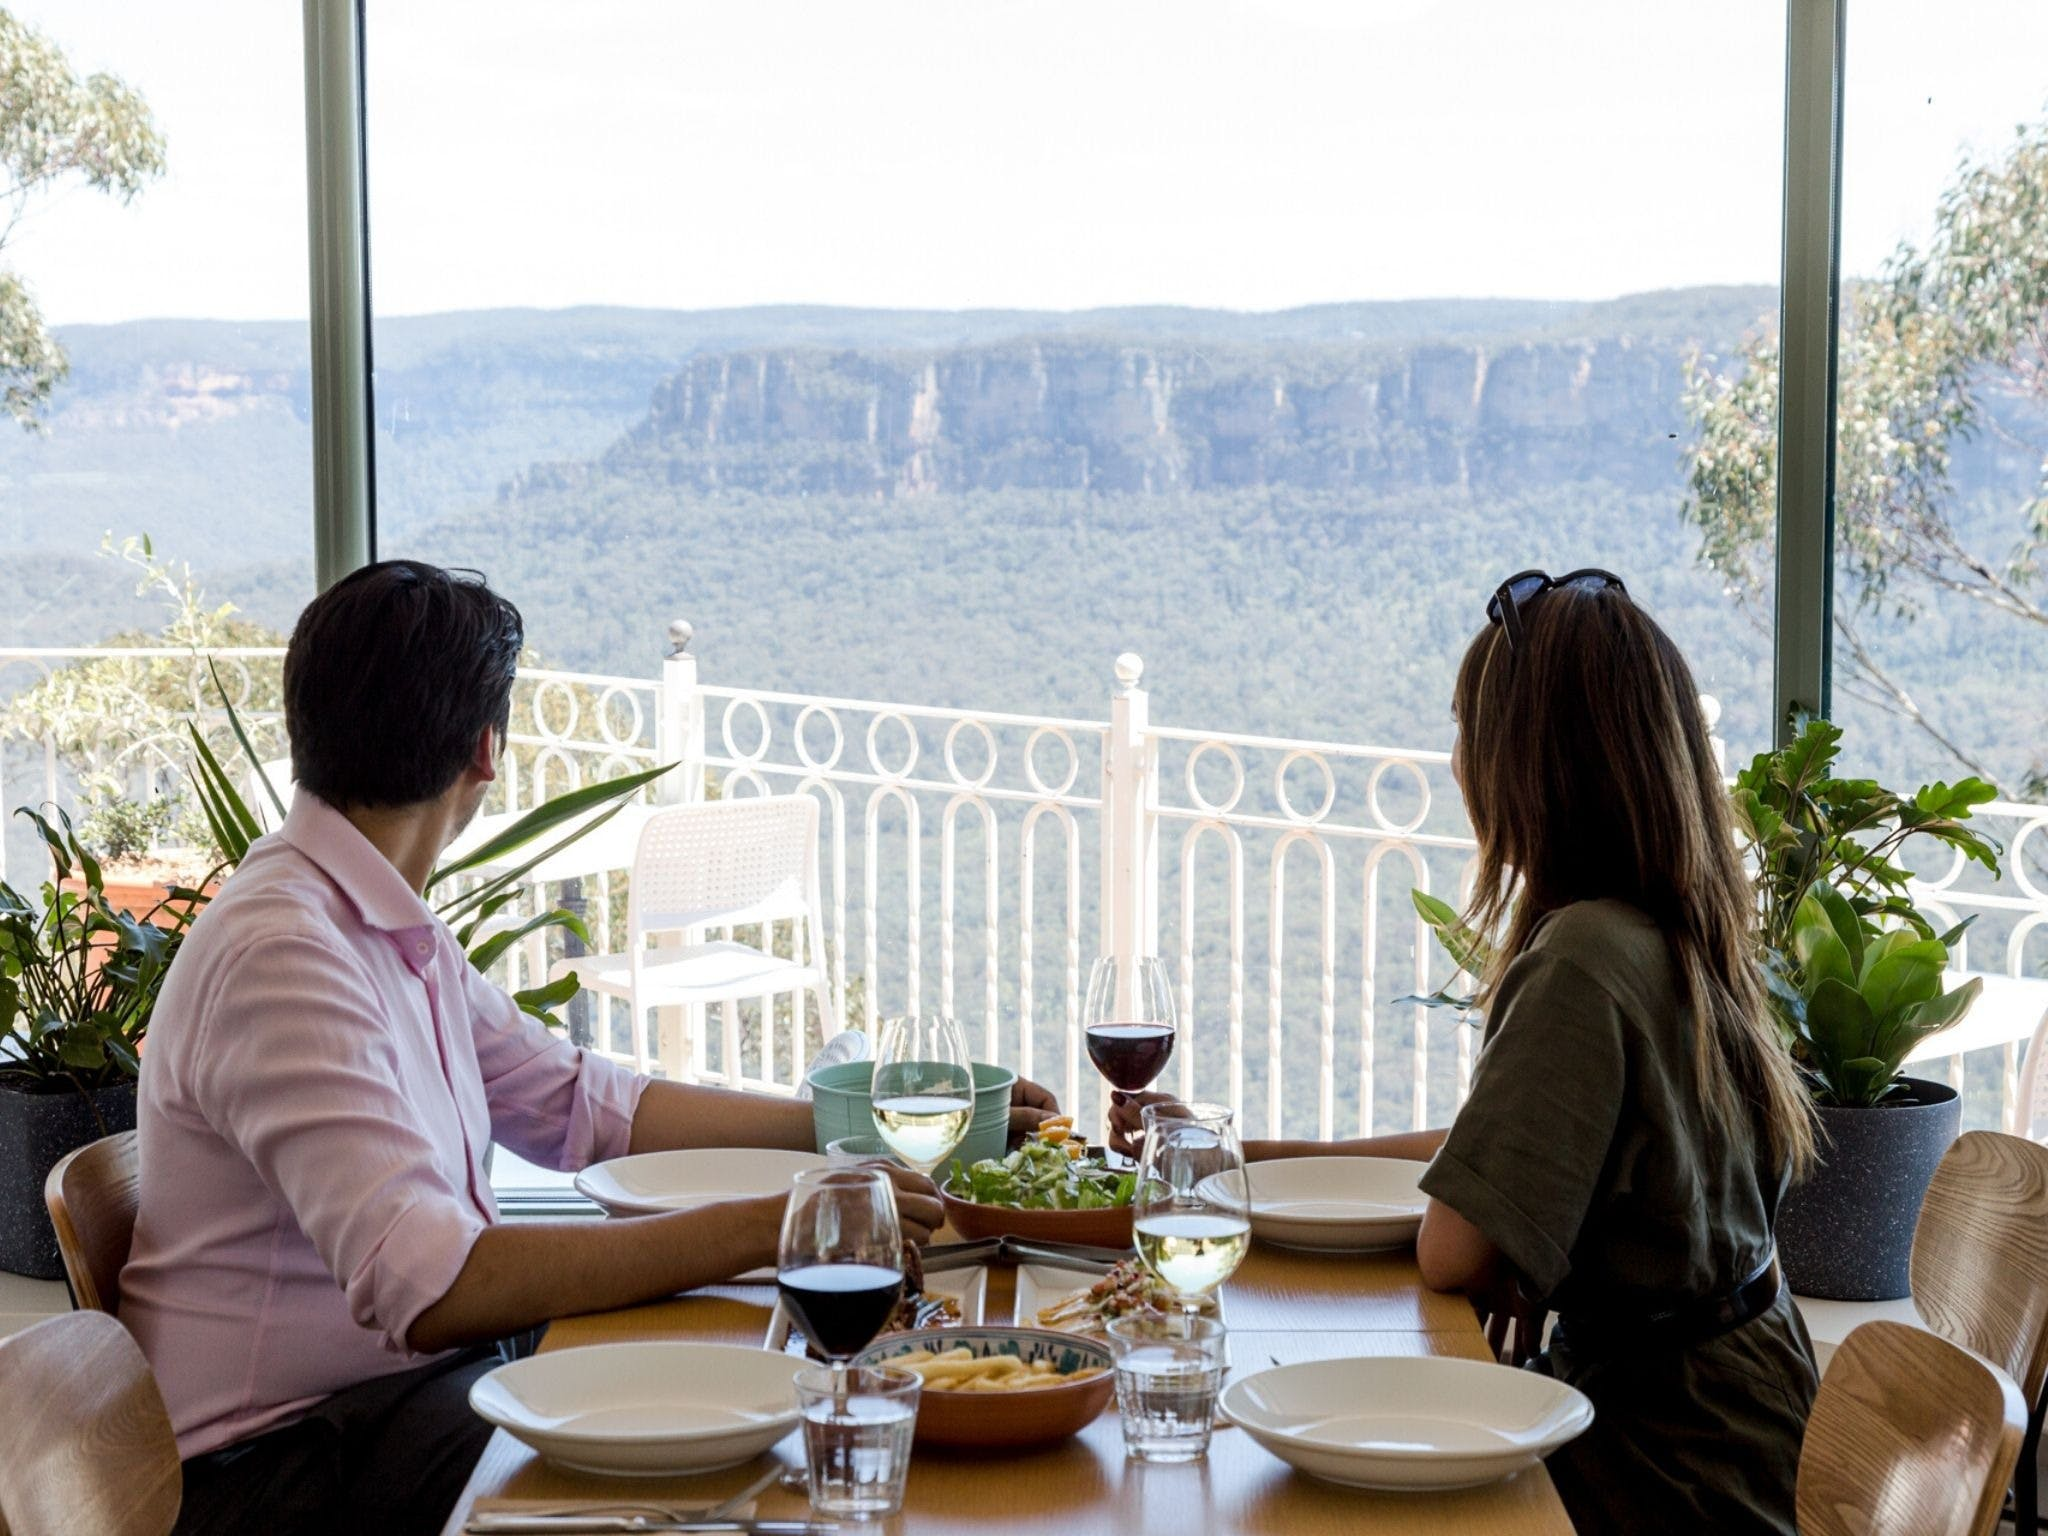 Christmas Day Lunch at The Lookout Echo Point - Accommodation BNB